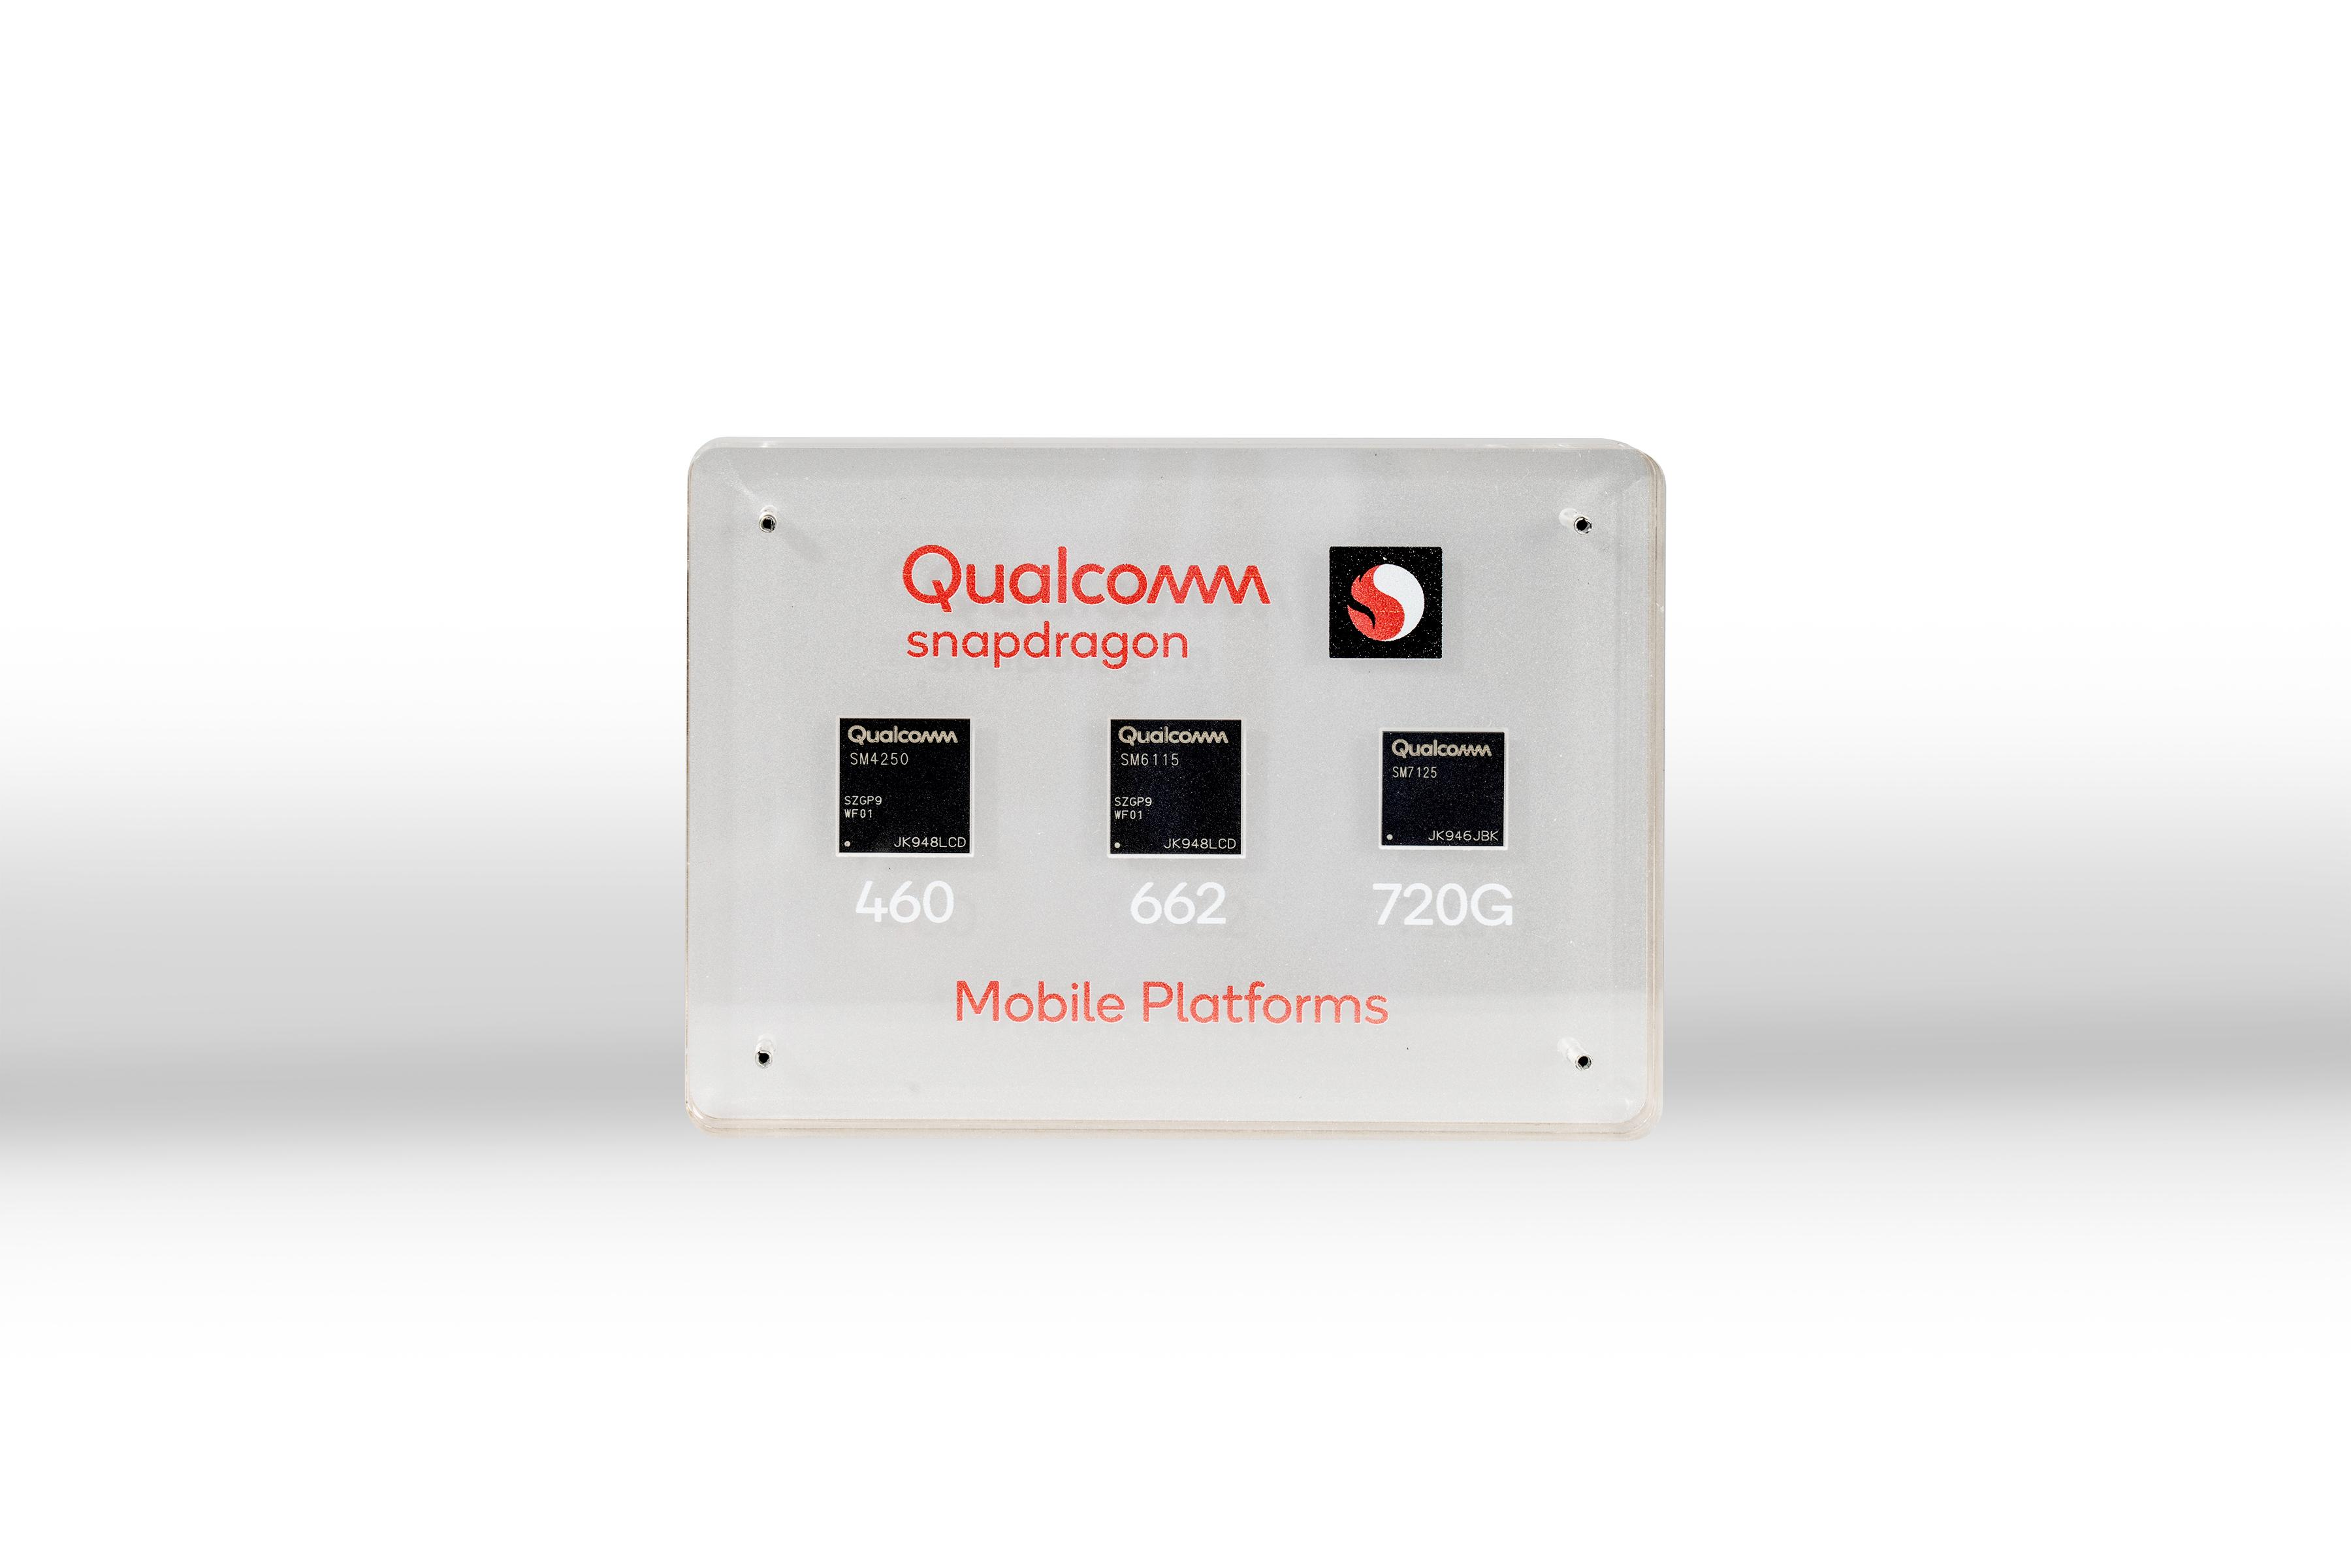 New 4G Qualcomm Snapdragon chipsets will make cheap phones the best they can be in 2020